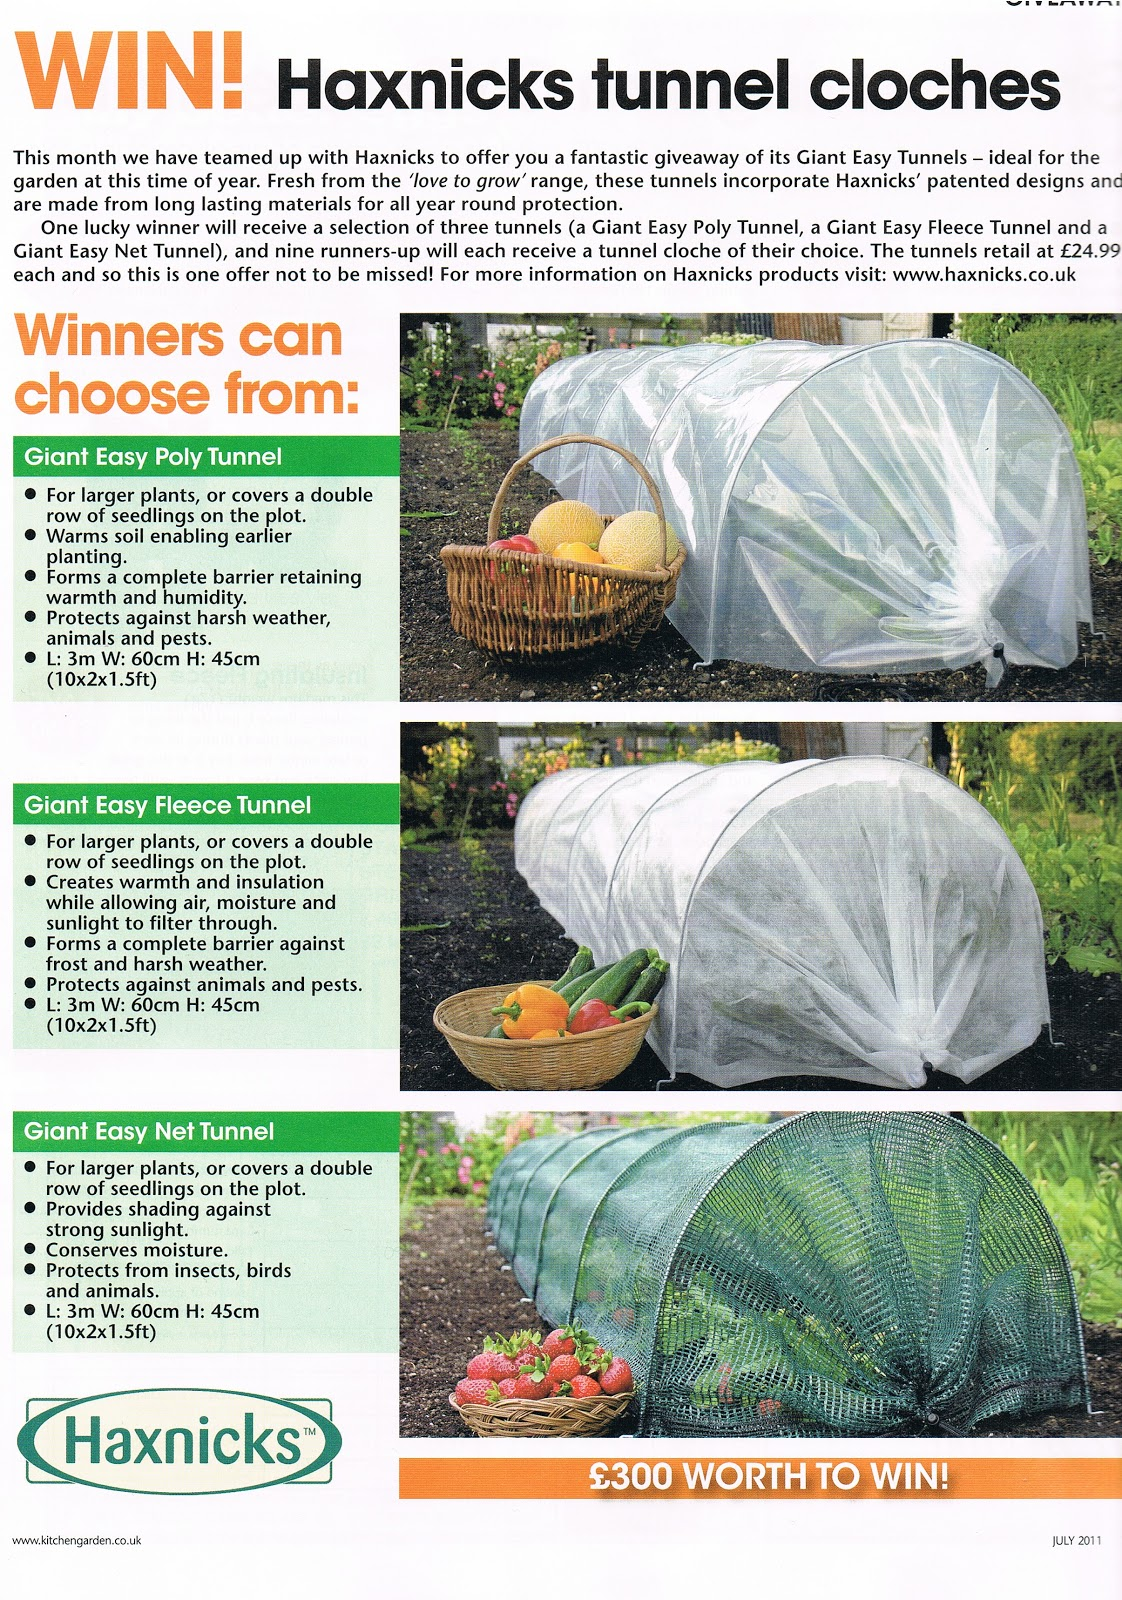 Kitchen Gardener Magazine Win Easy Tunnels Haxnicks